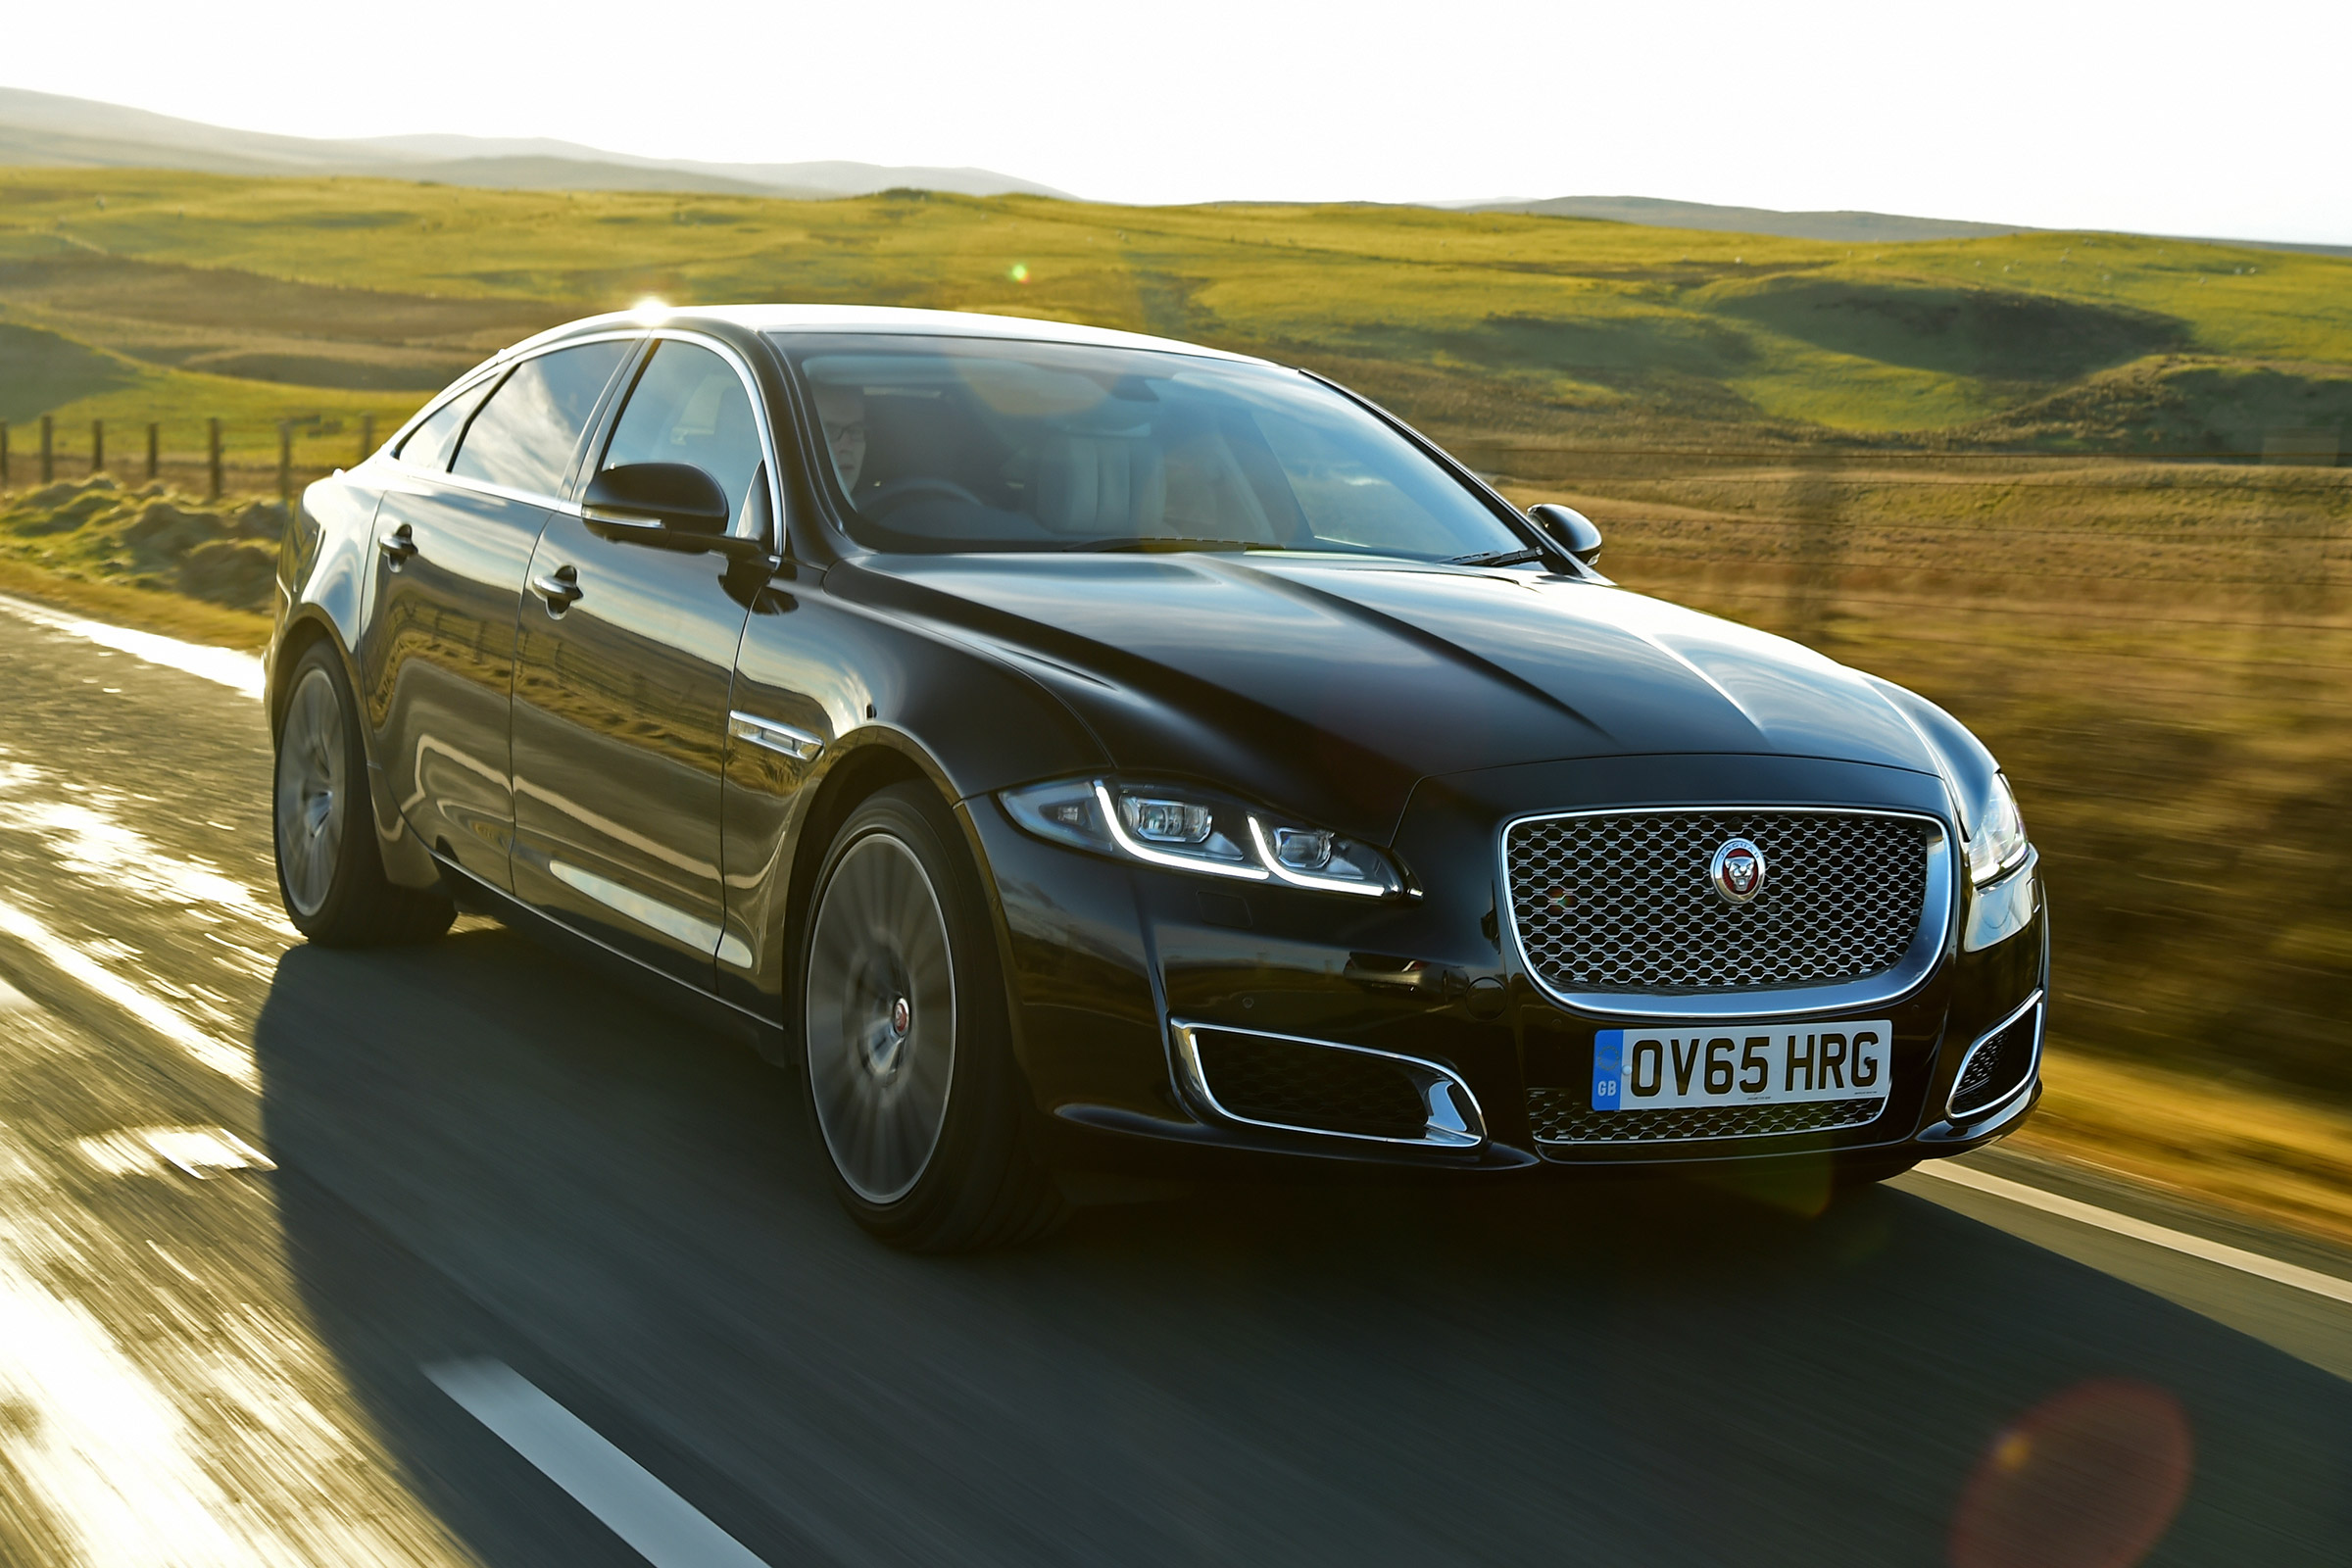 Jaguar XJ - Top selling executive sedans and saloons